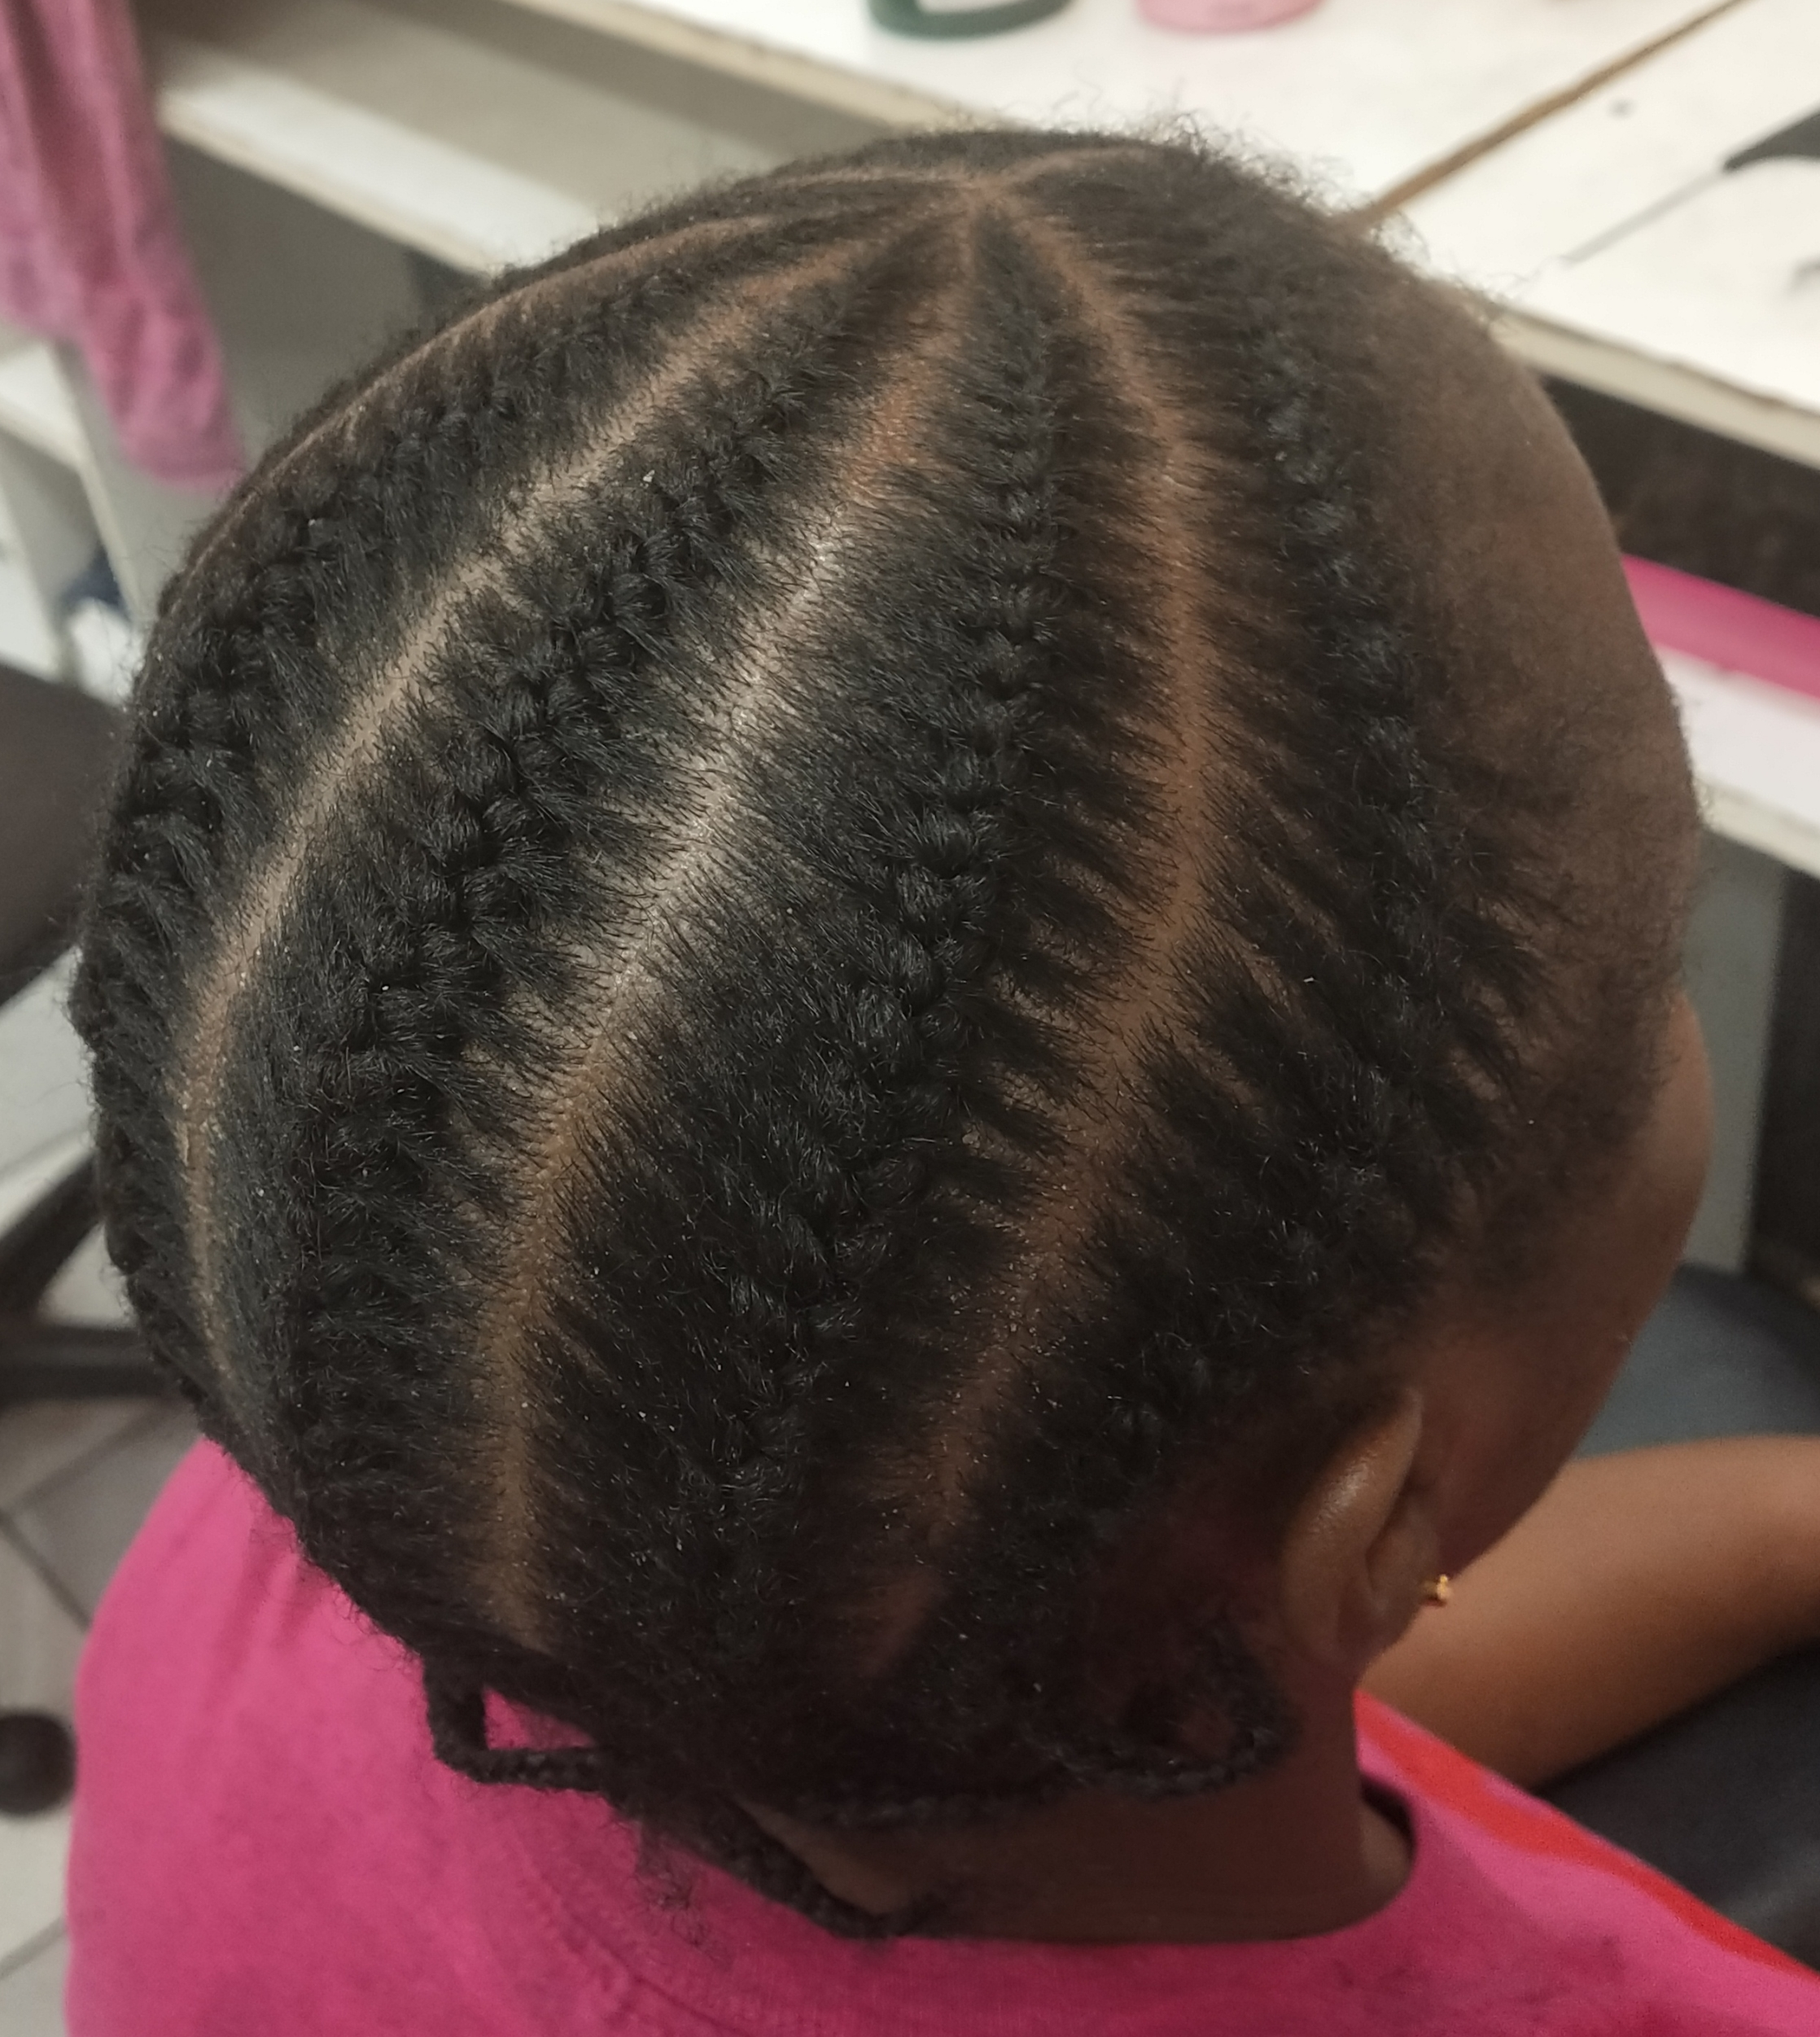 salon de coiffure afro tresse tresses box braids crochet braids vanilles tissages paris 75 77 78 91 92 93 94 95 LVUIDONS